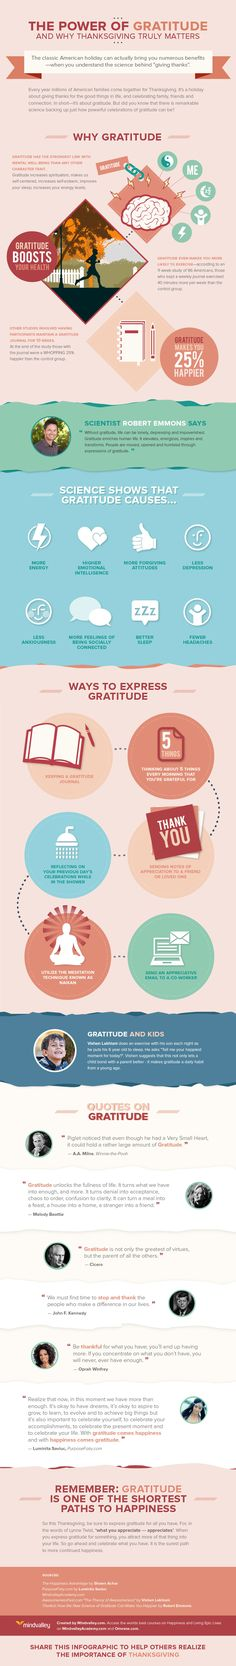 The Power of Gratitude #infographic #Health #Culture #Life #Gratitude